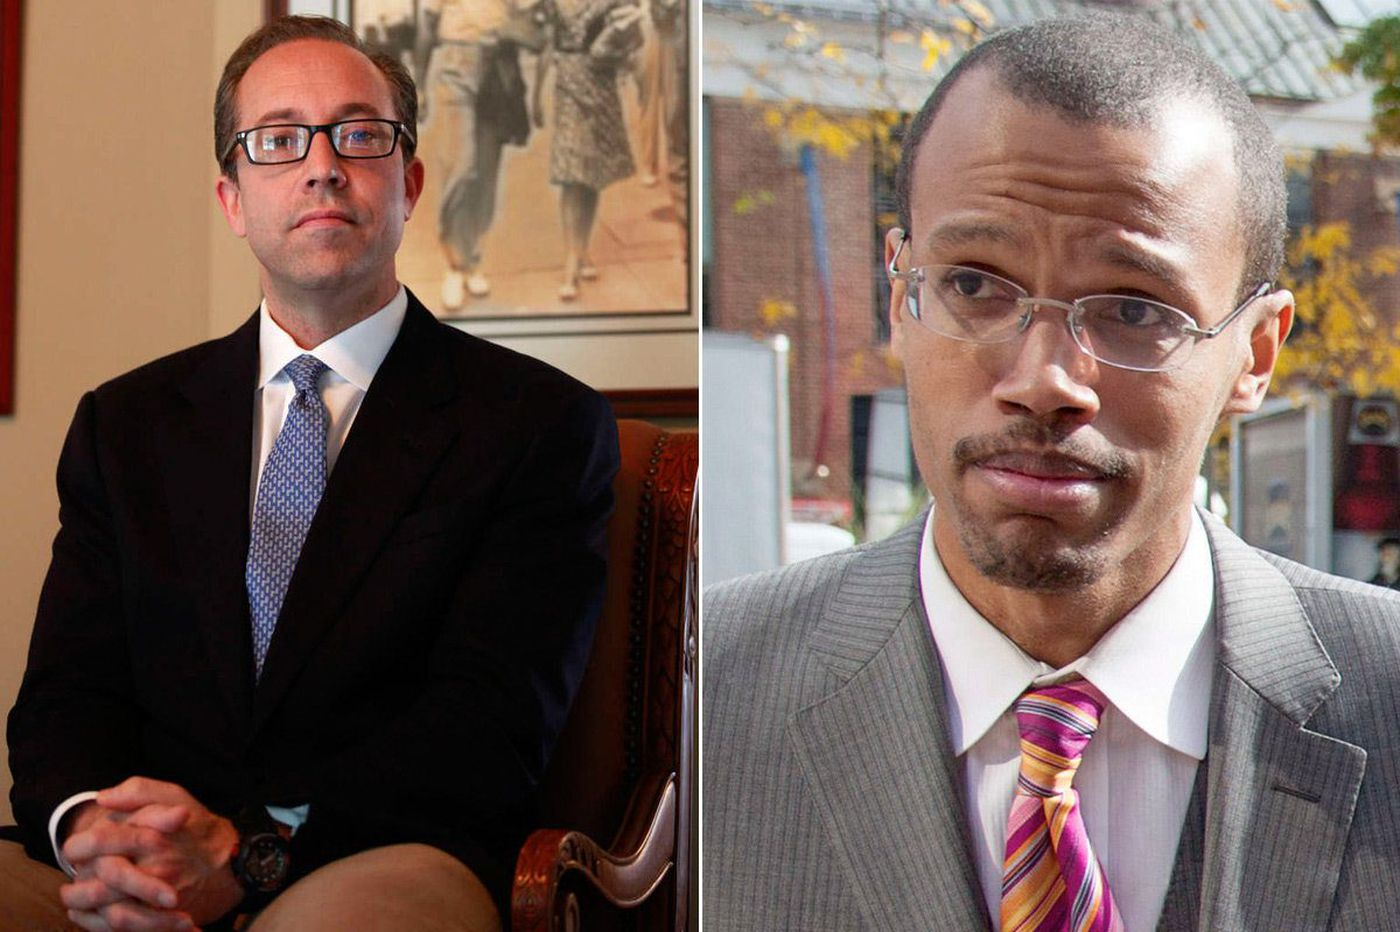 Contractor: Chaka Fattah threatened me to rehire his son